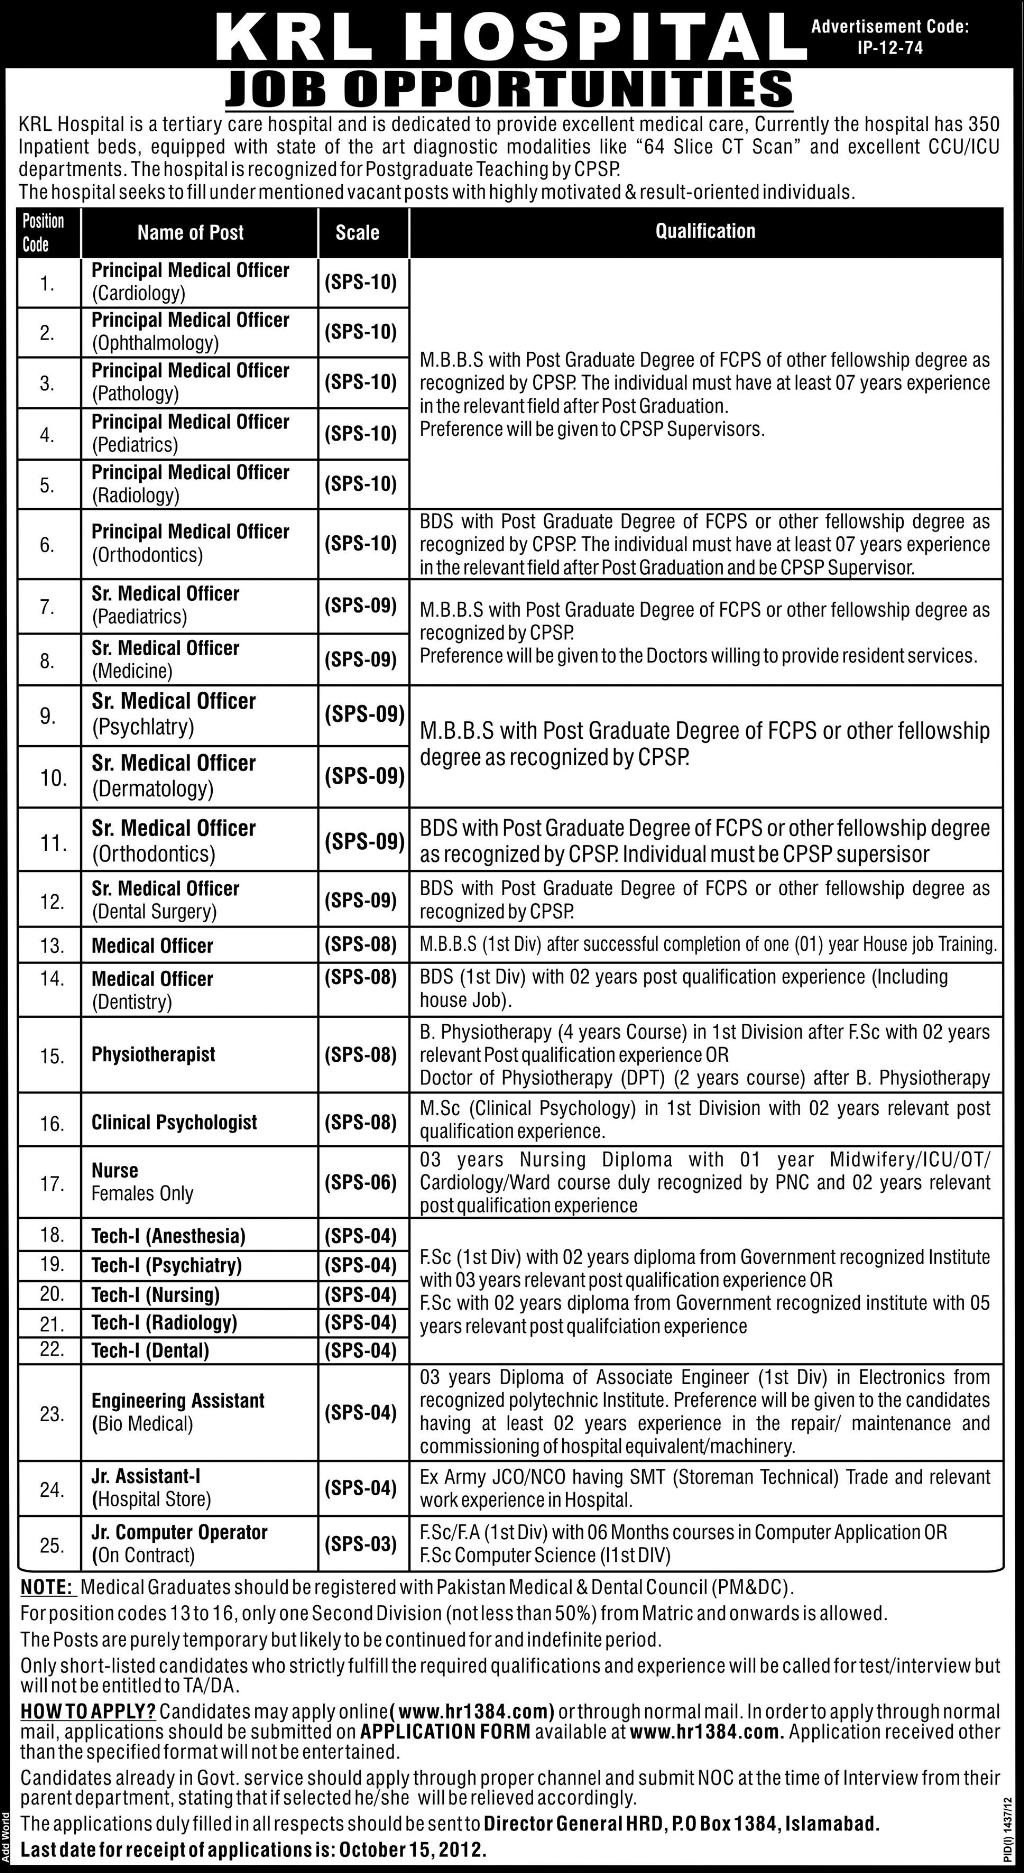 KRL Hospital Requires Medical Professionals and Computer Operator (Government Job)